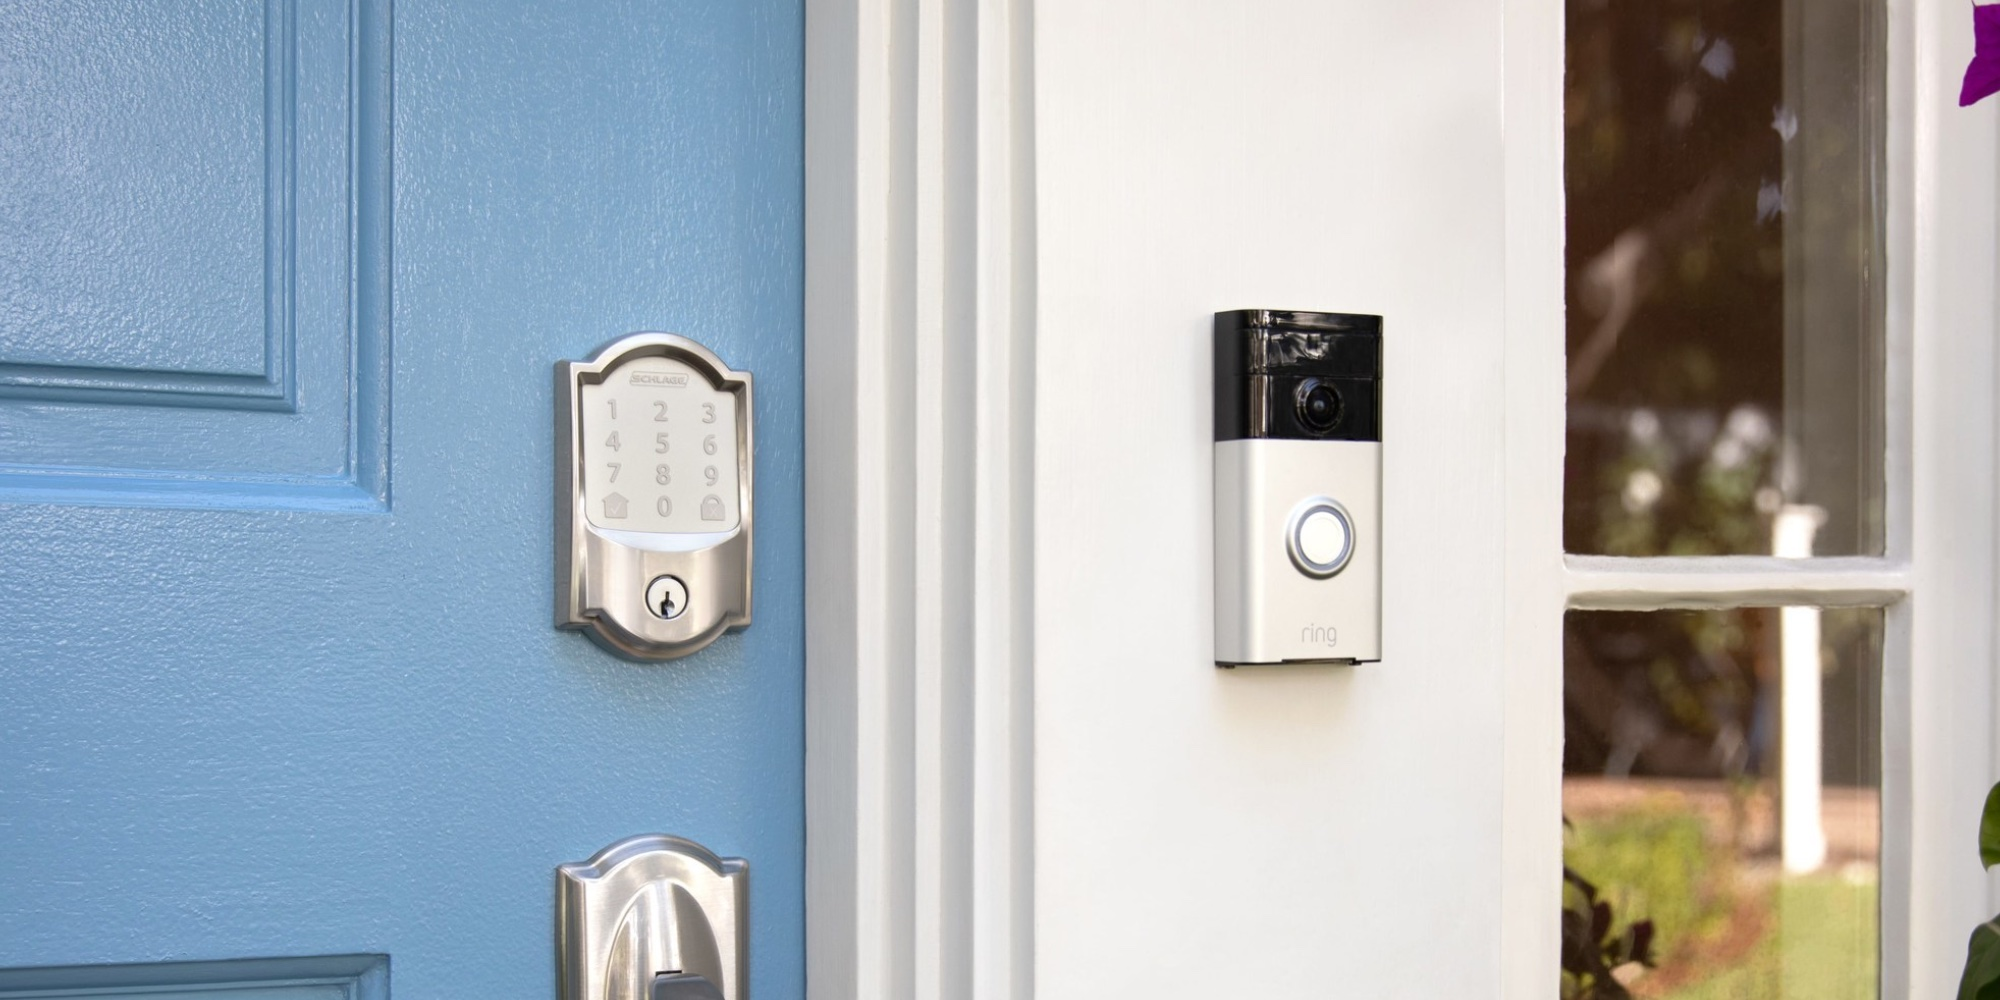 New Works With Ring program joins thousands of smart home devices with your security system